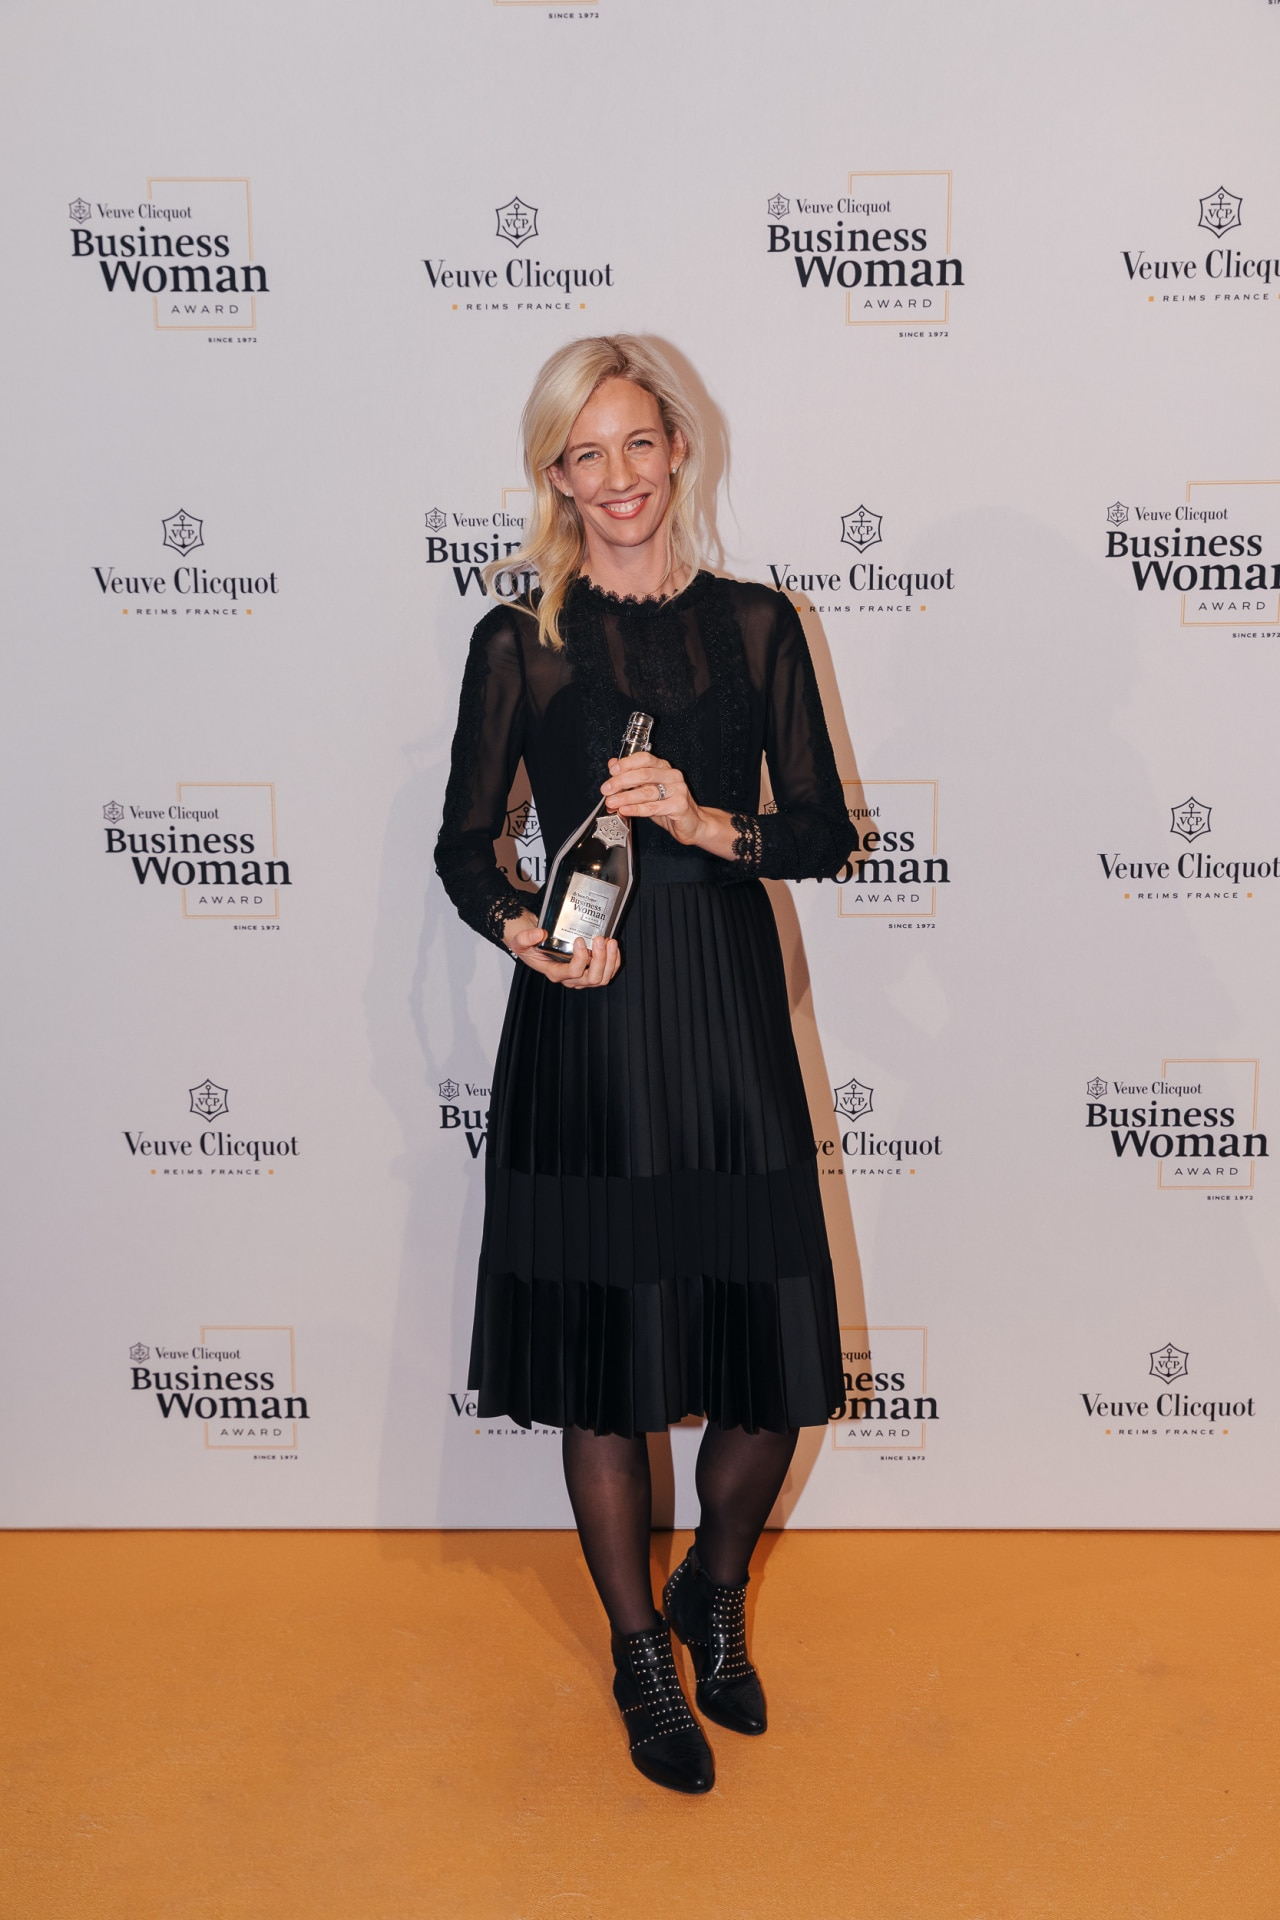 Inside the Veuve Clicquot Business Woman Awards 2019